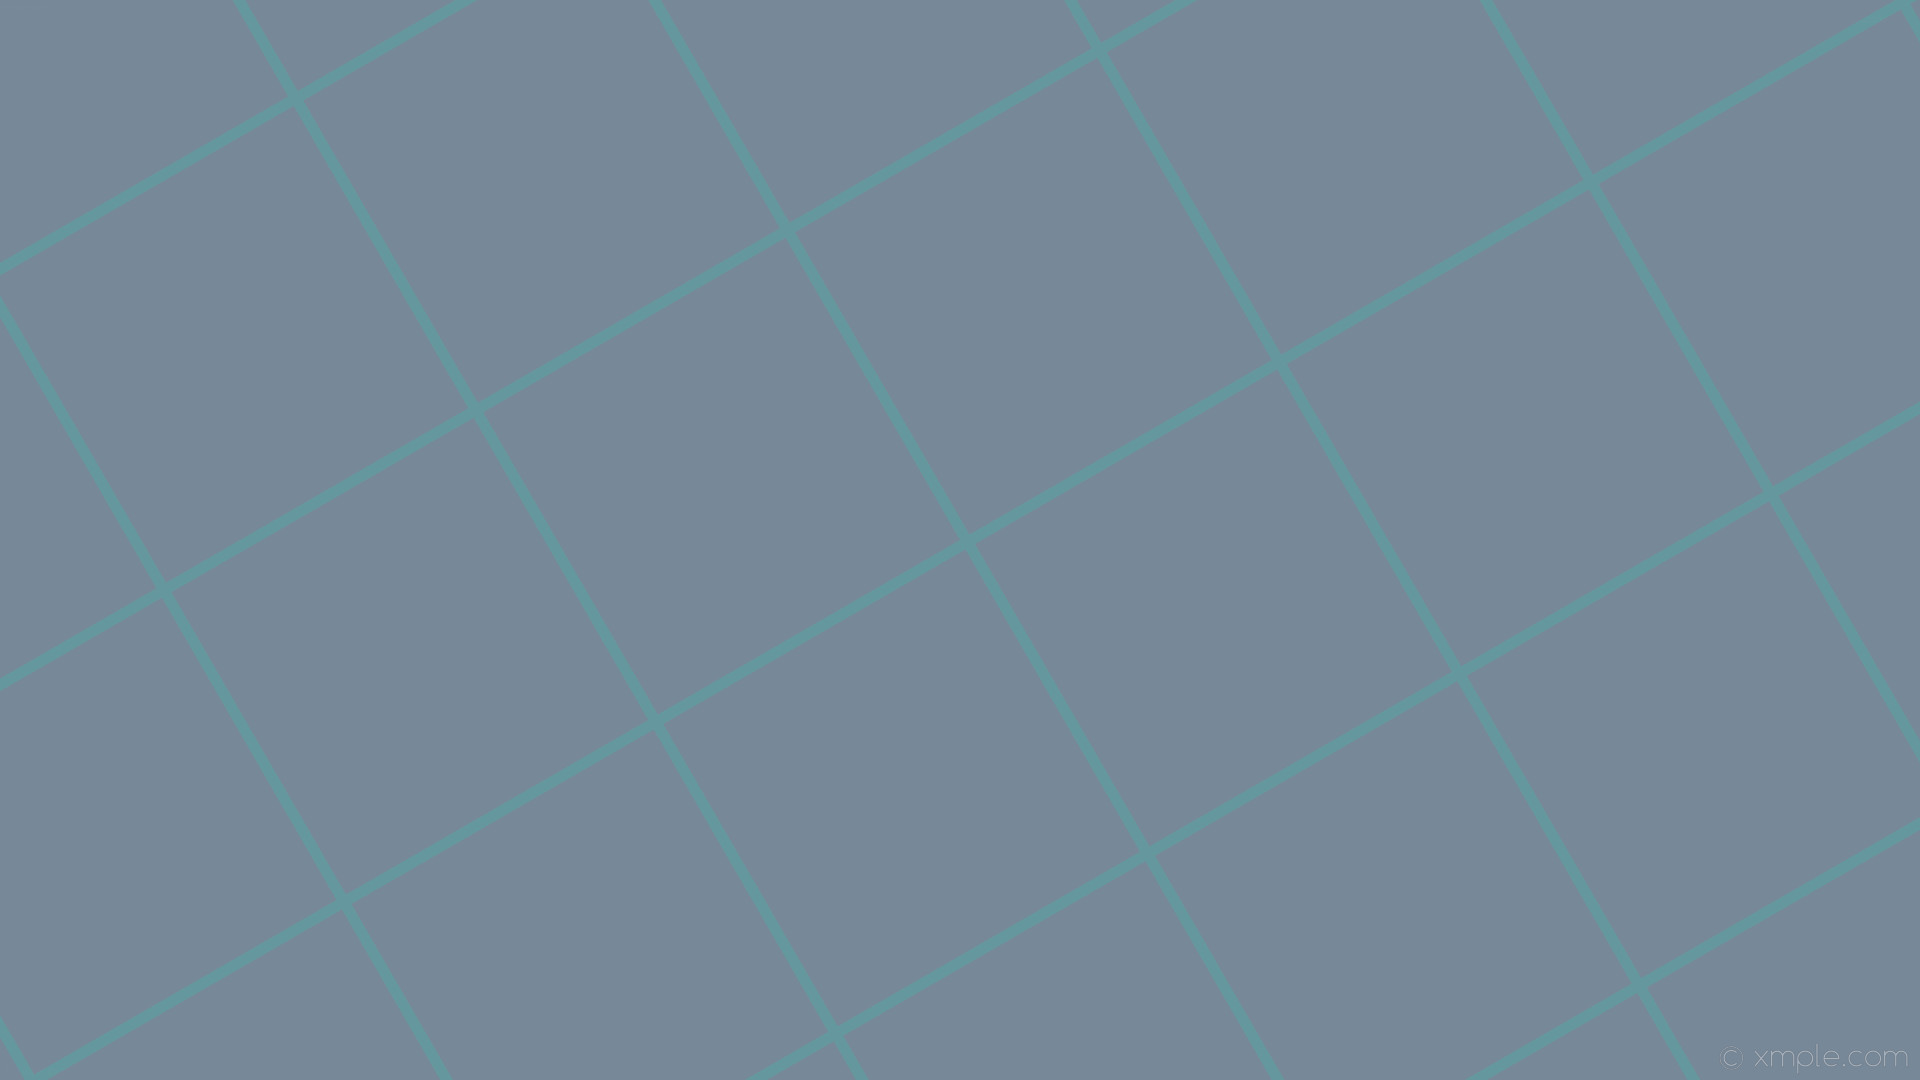 wallpaper blue grid graph paper grey light slate gray cadet blue #778899  #5f9ea0 30